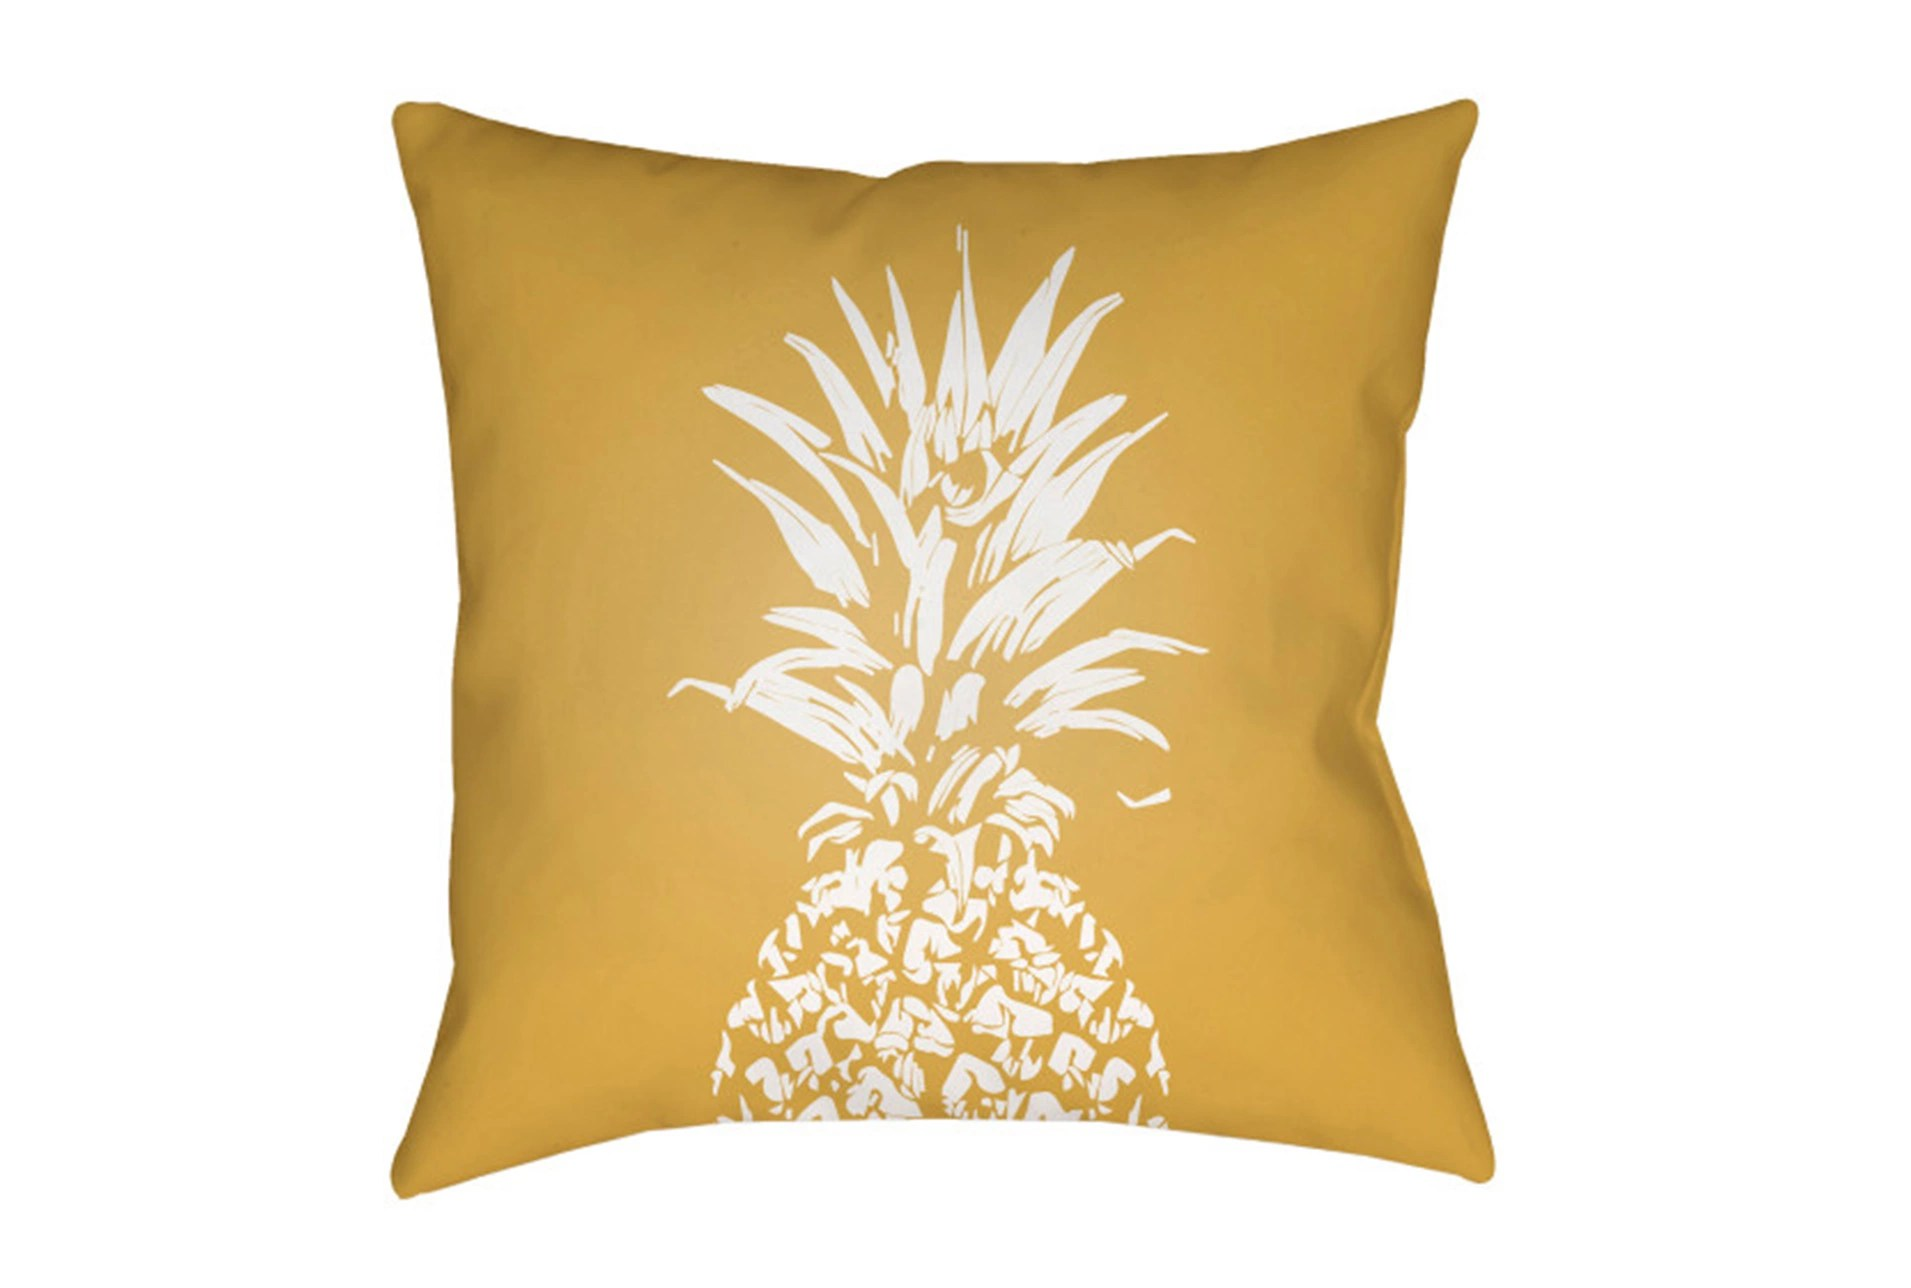 Outdoor Accent Pillow Yellow Pineapple 18x18 Living Spaces